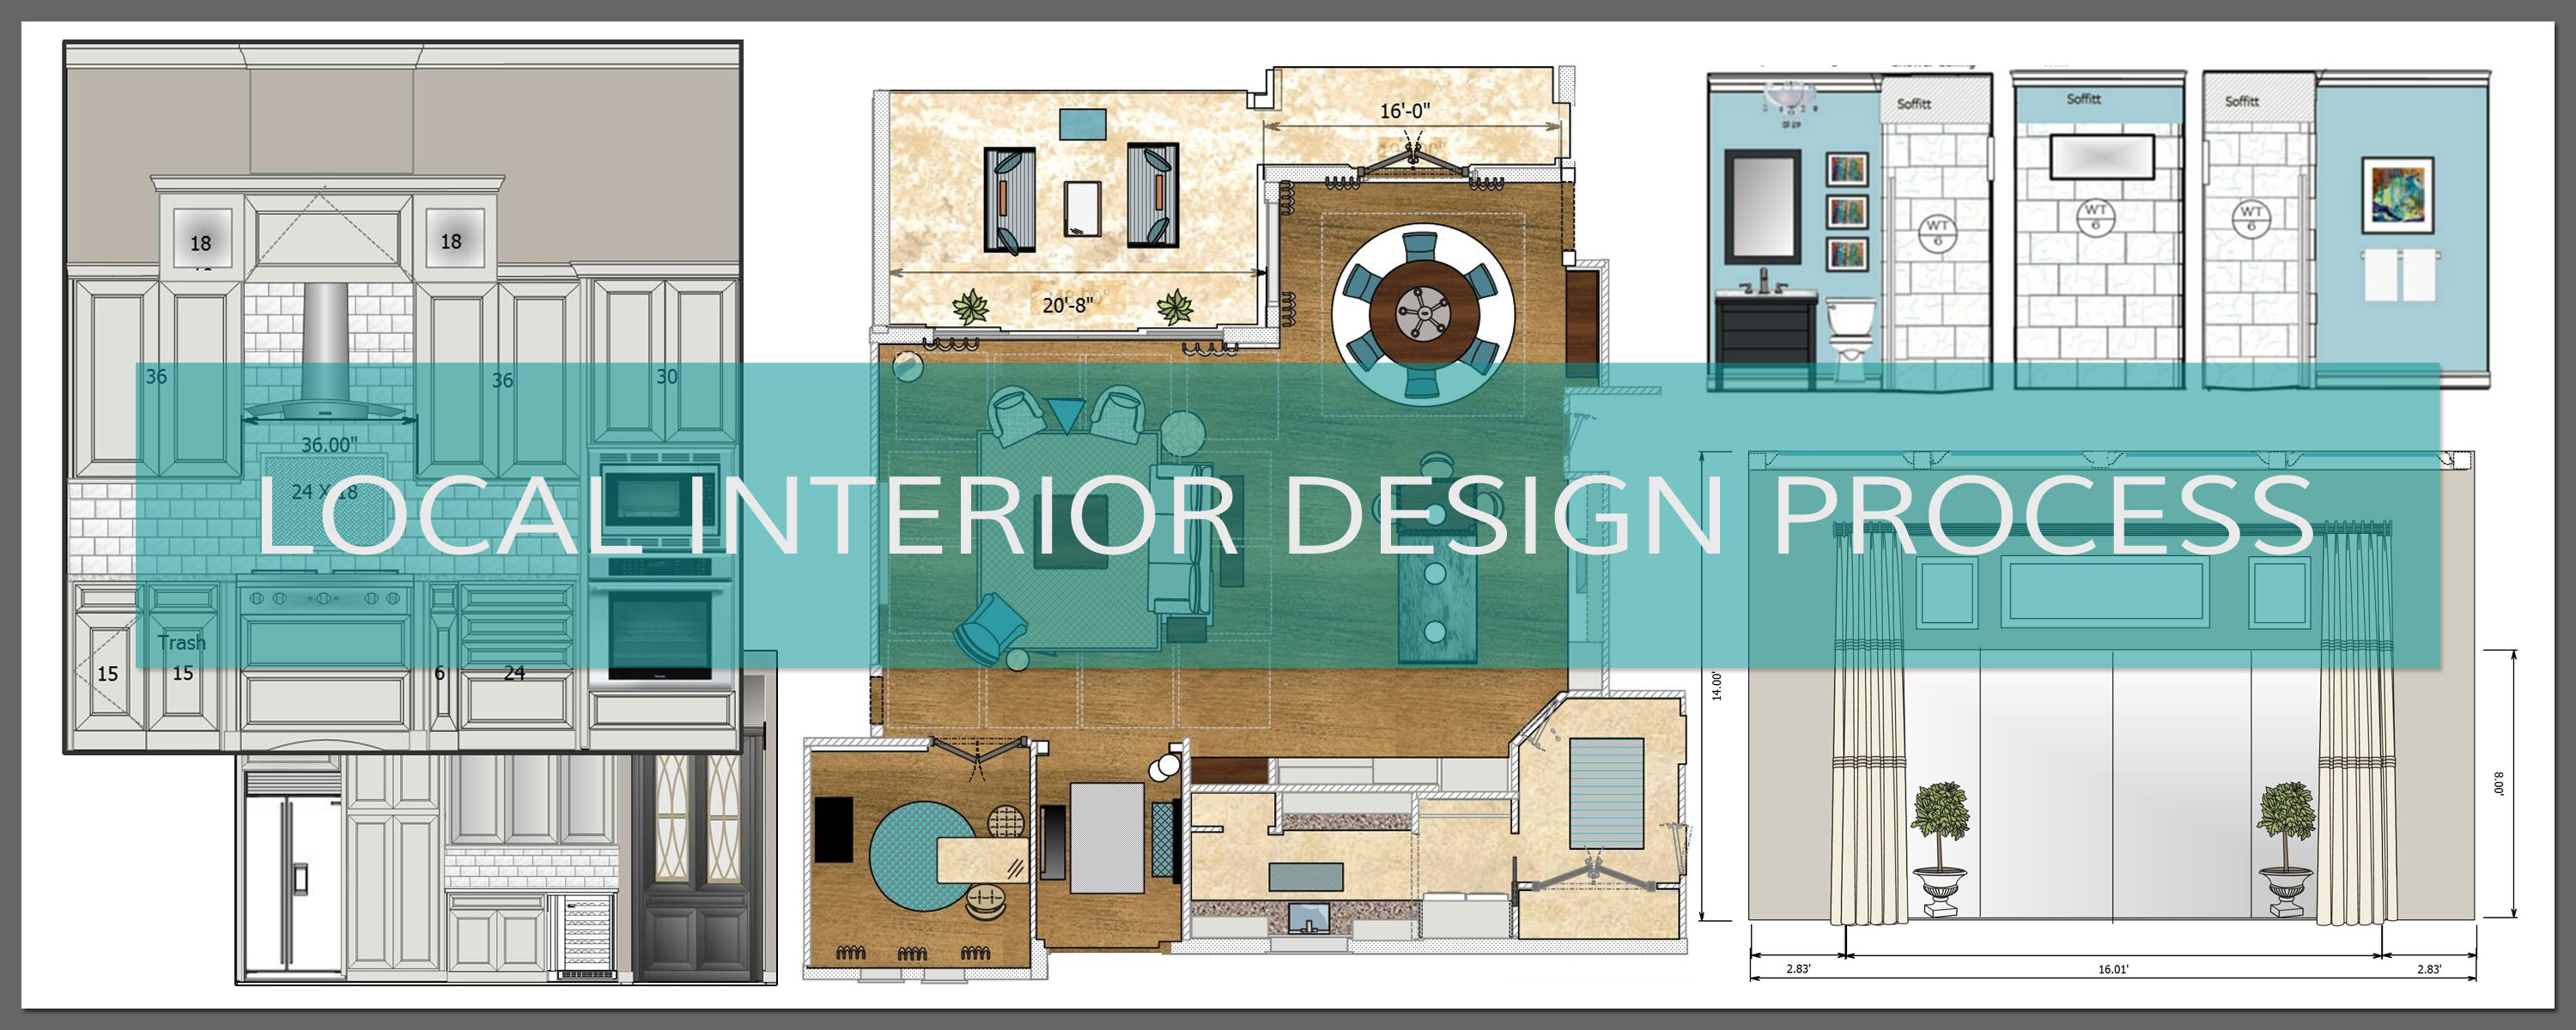 Local interior design process terri davis art design for Interior design process